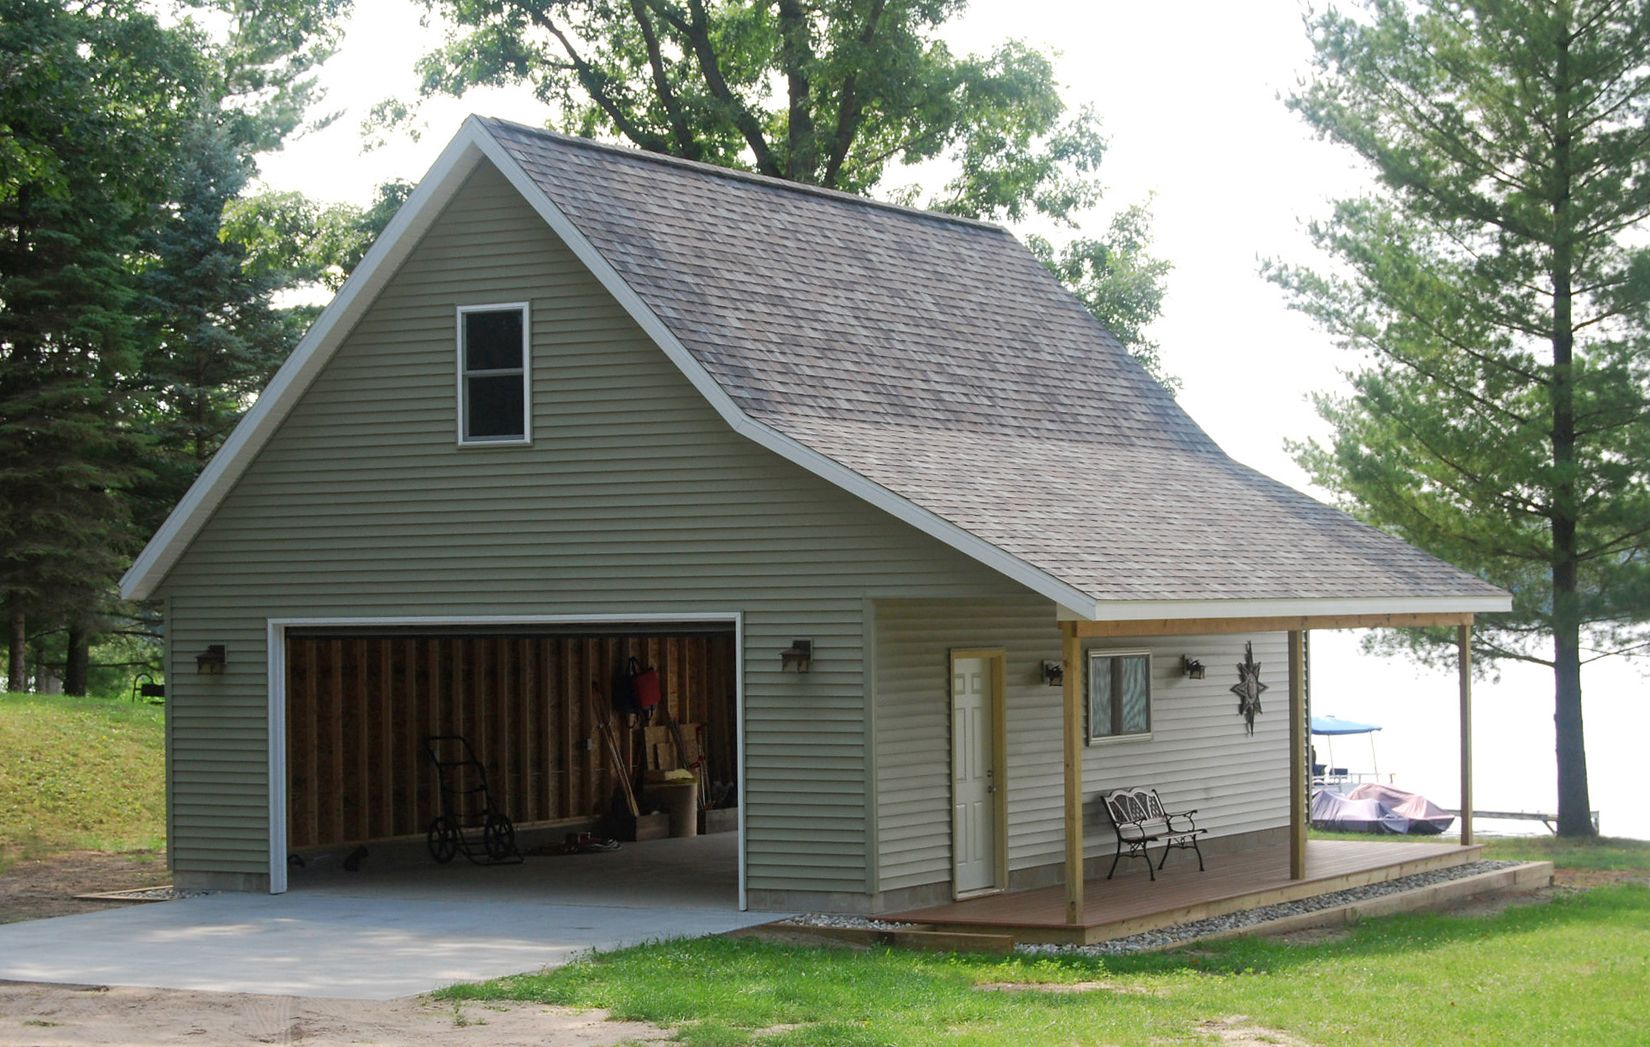 Pole barn garage plans welcome to jb custom homes where for A frame house plans with attached garage